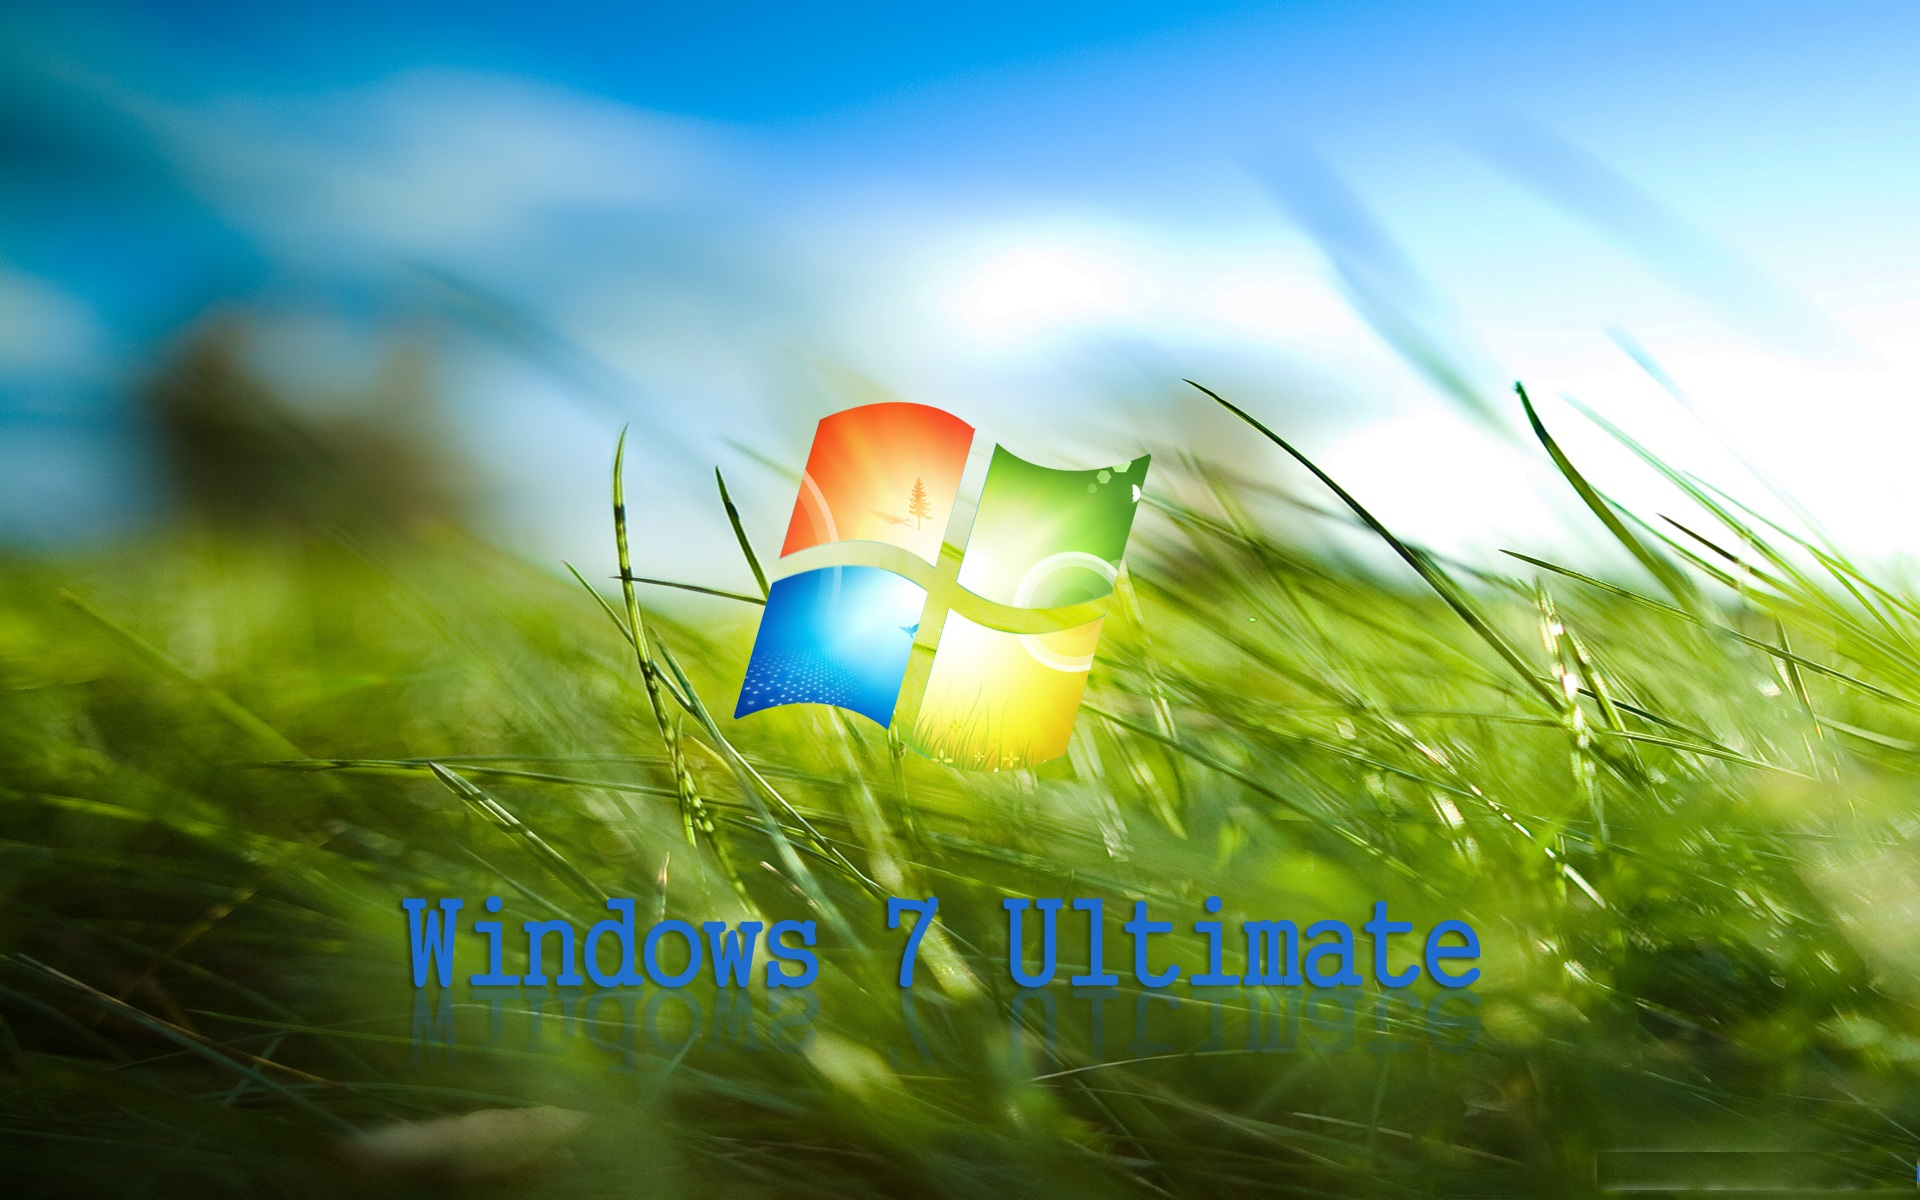 Wallpaper For Windows 7 Ultimate Free Download